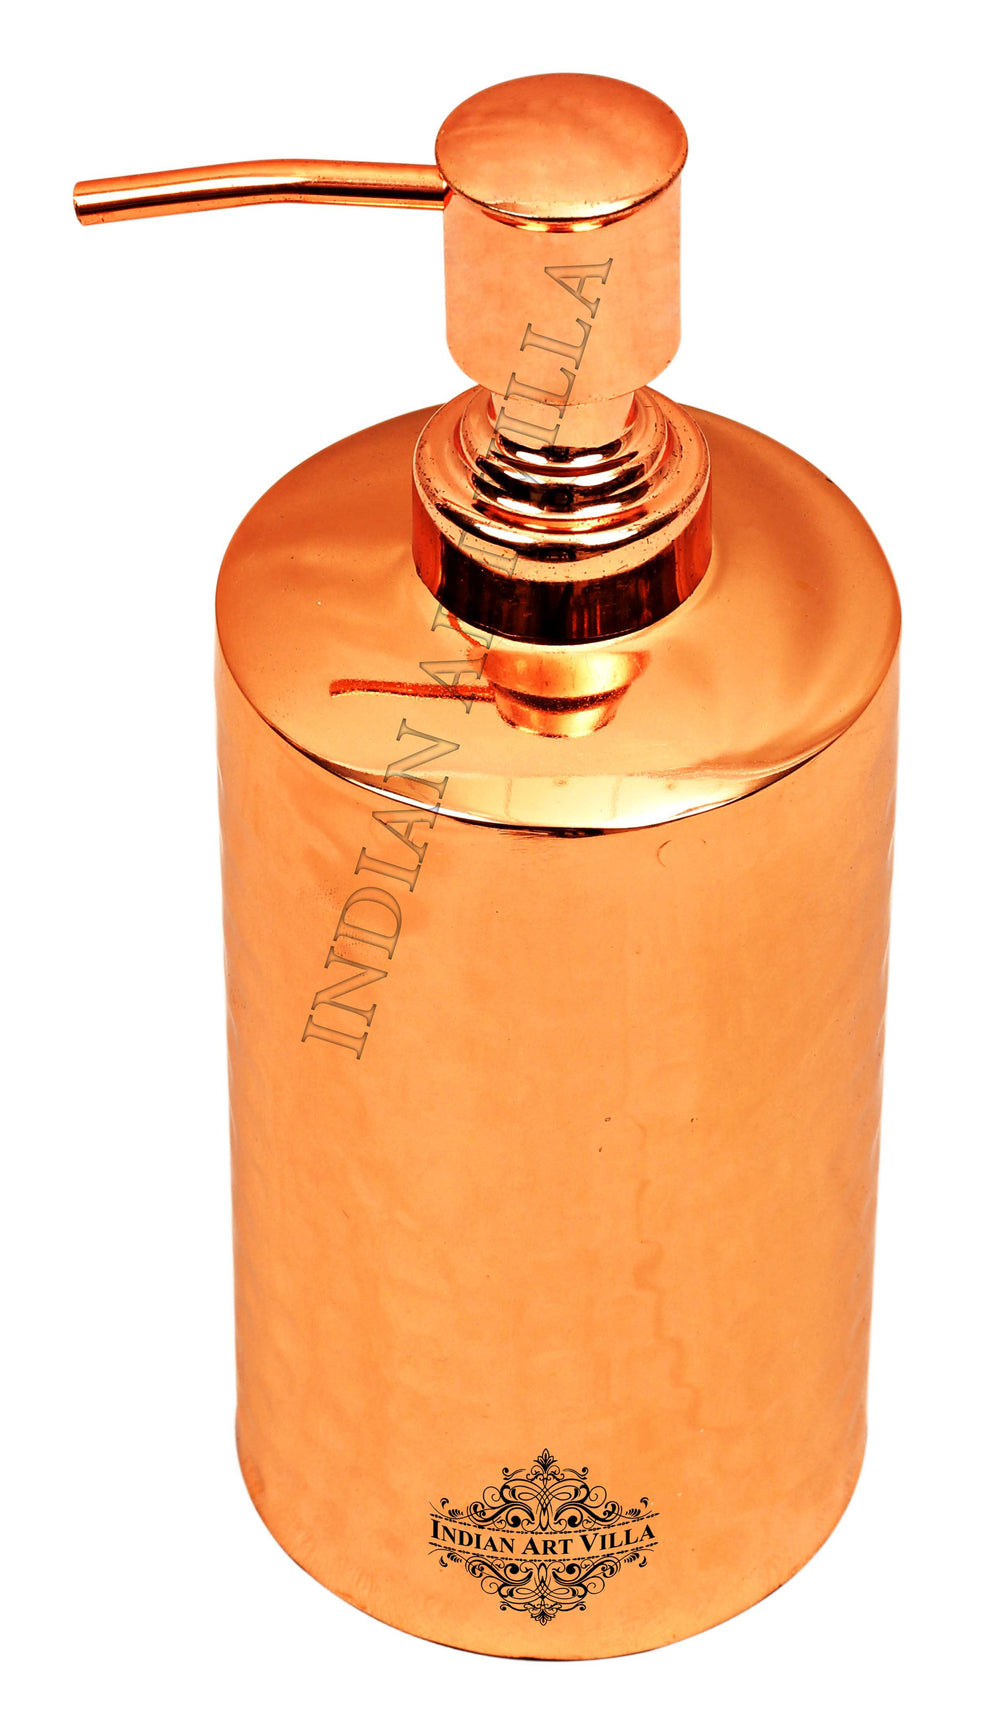 Copper Hammered Round Soap Dispenser